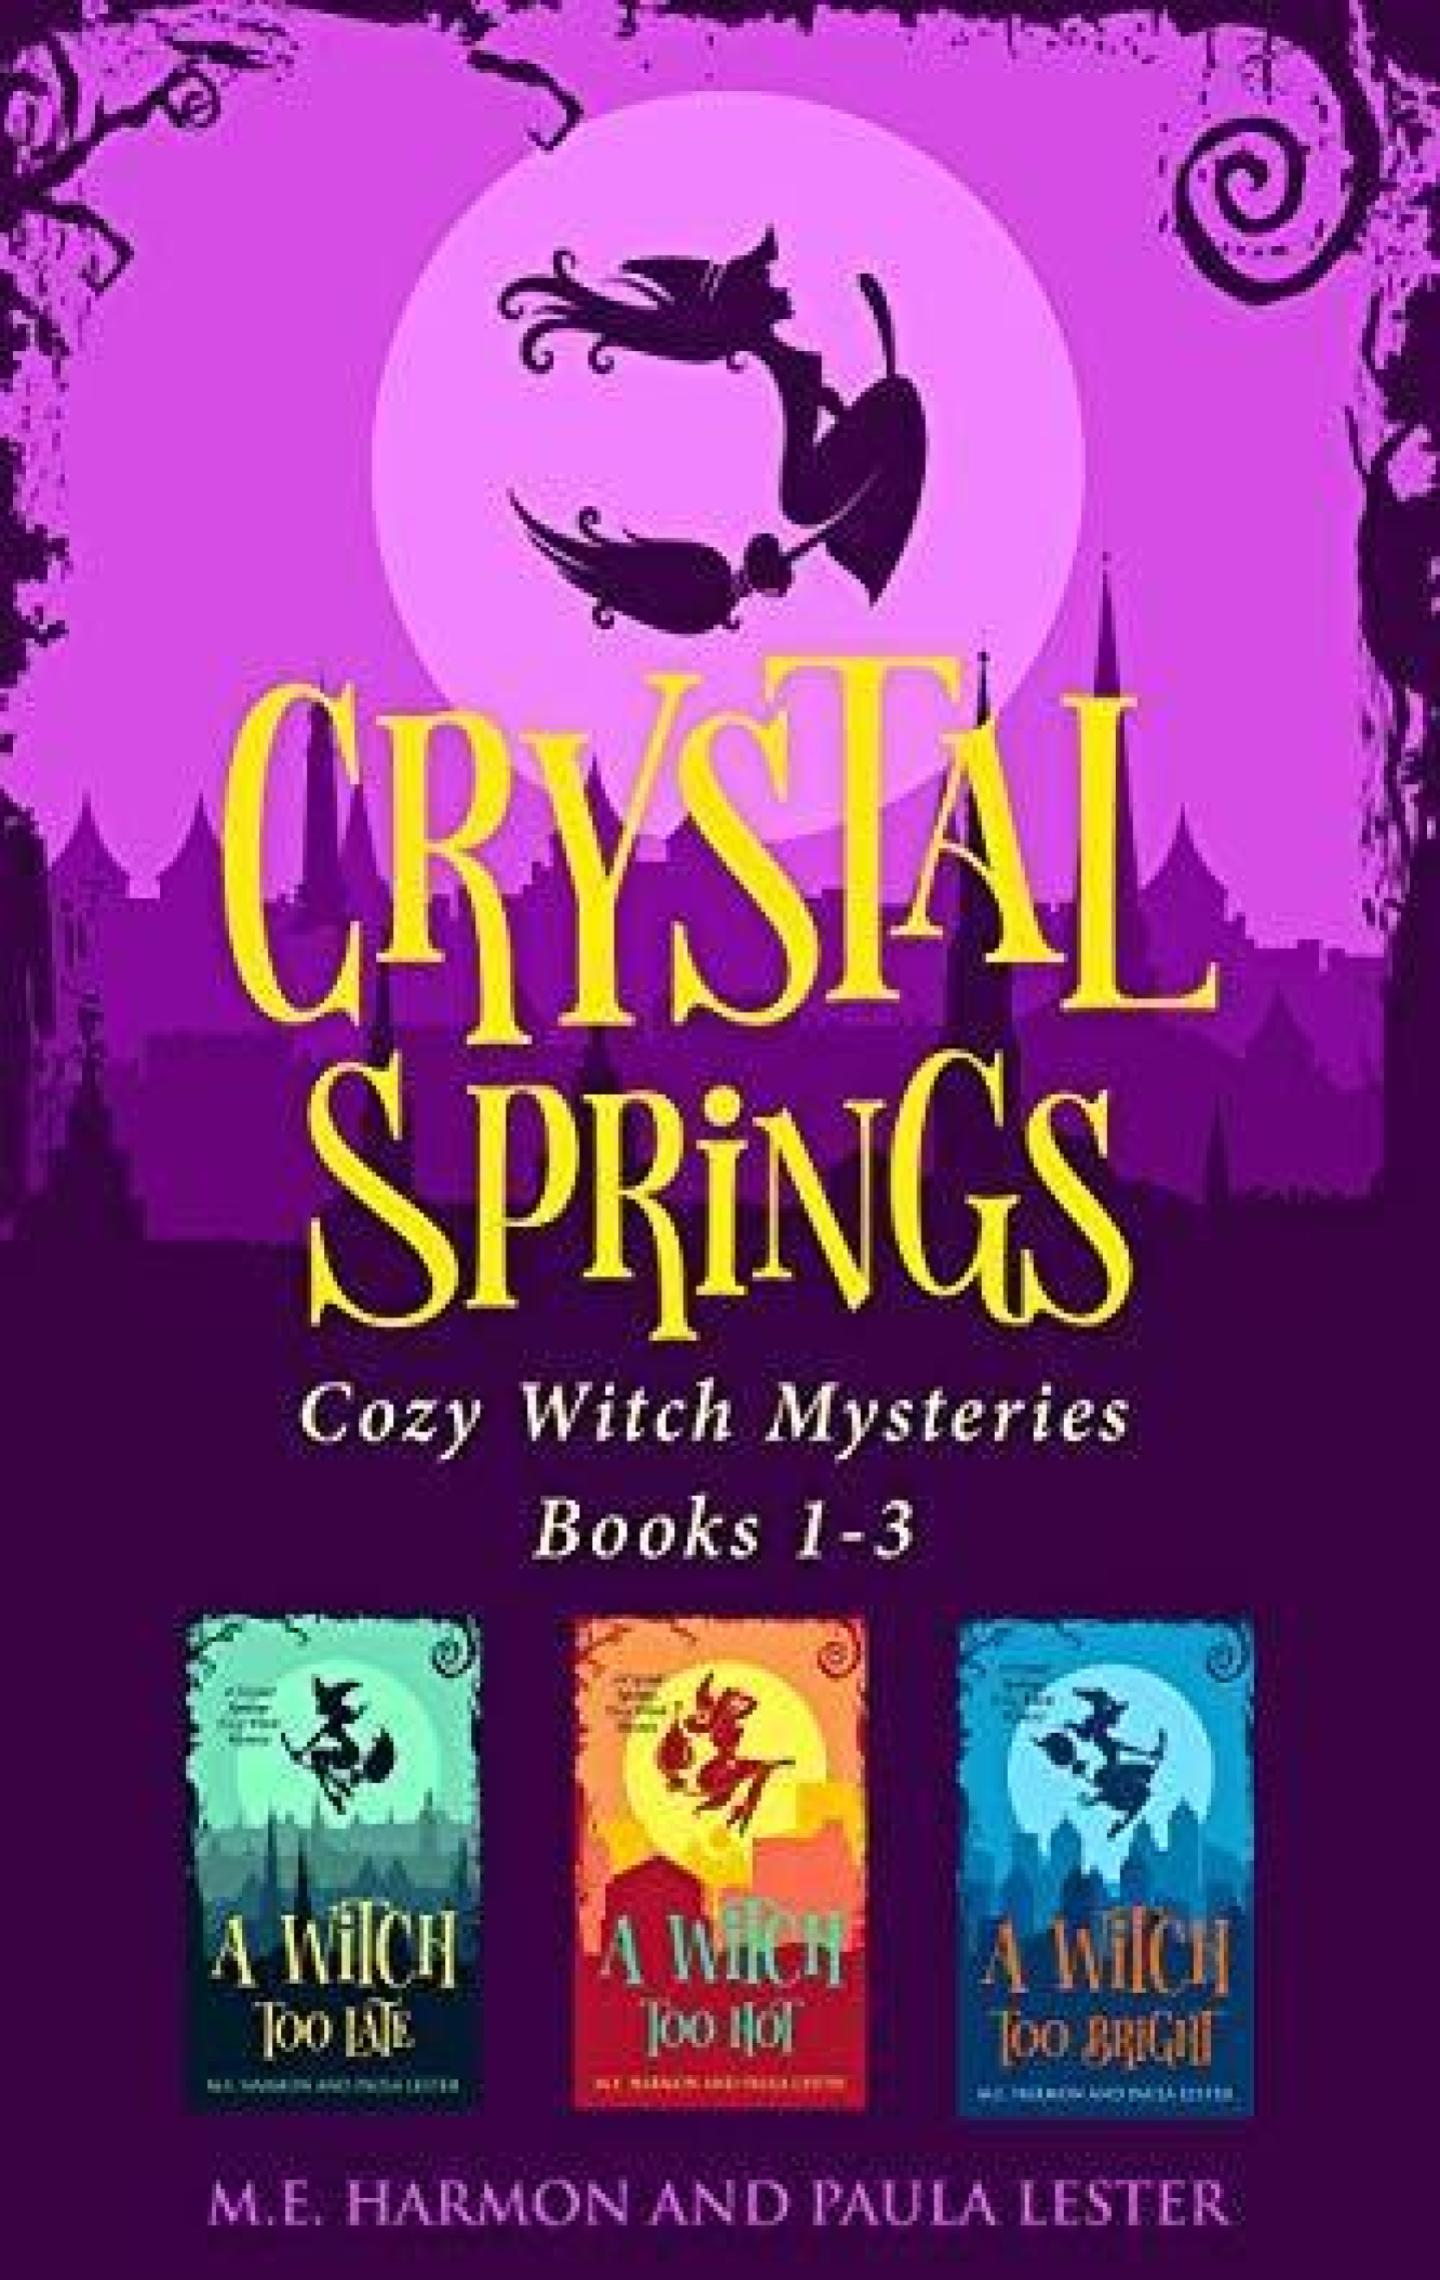 Crystal Springs Cozy Witch Mysteries Boxset 1